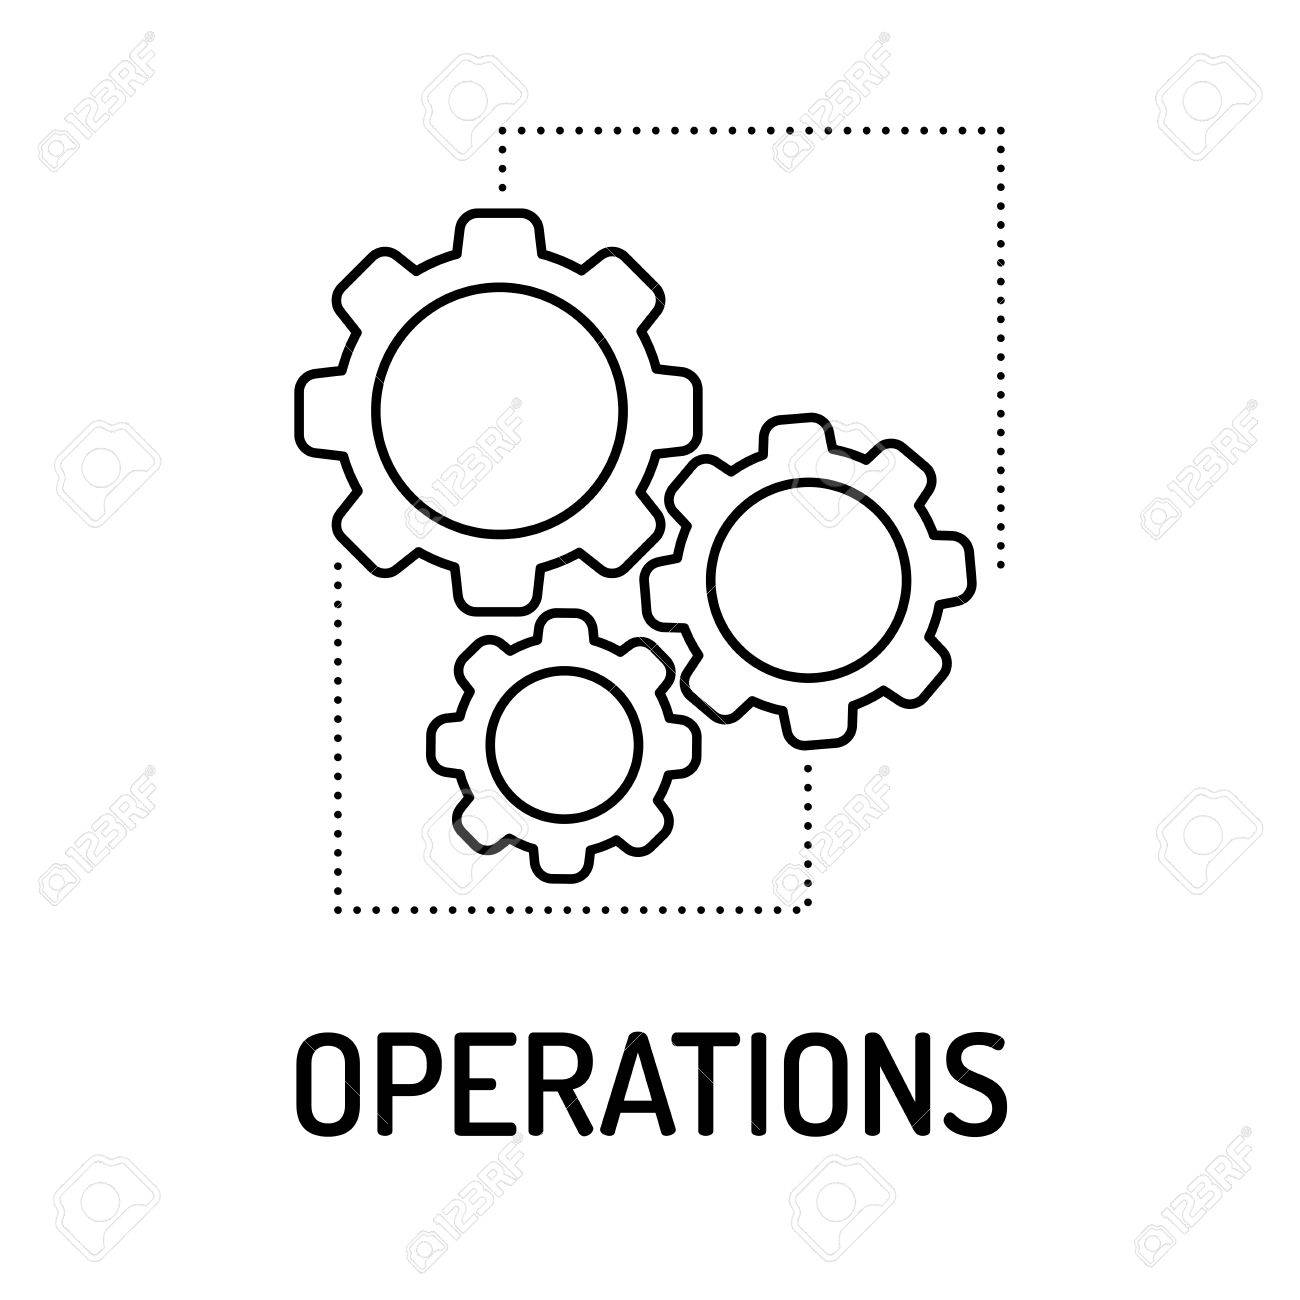 operations line icon royalty free cliparts vectors and stock